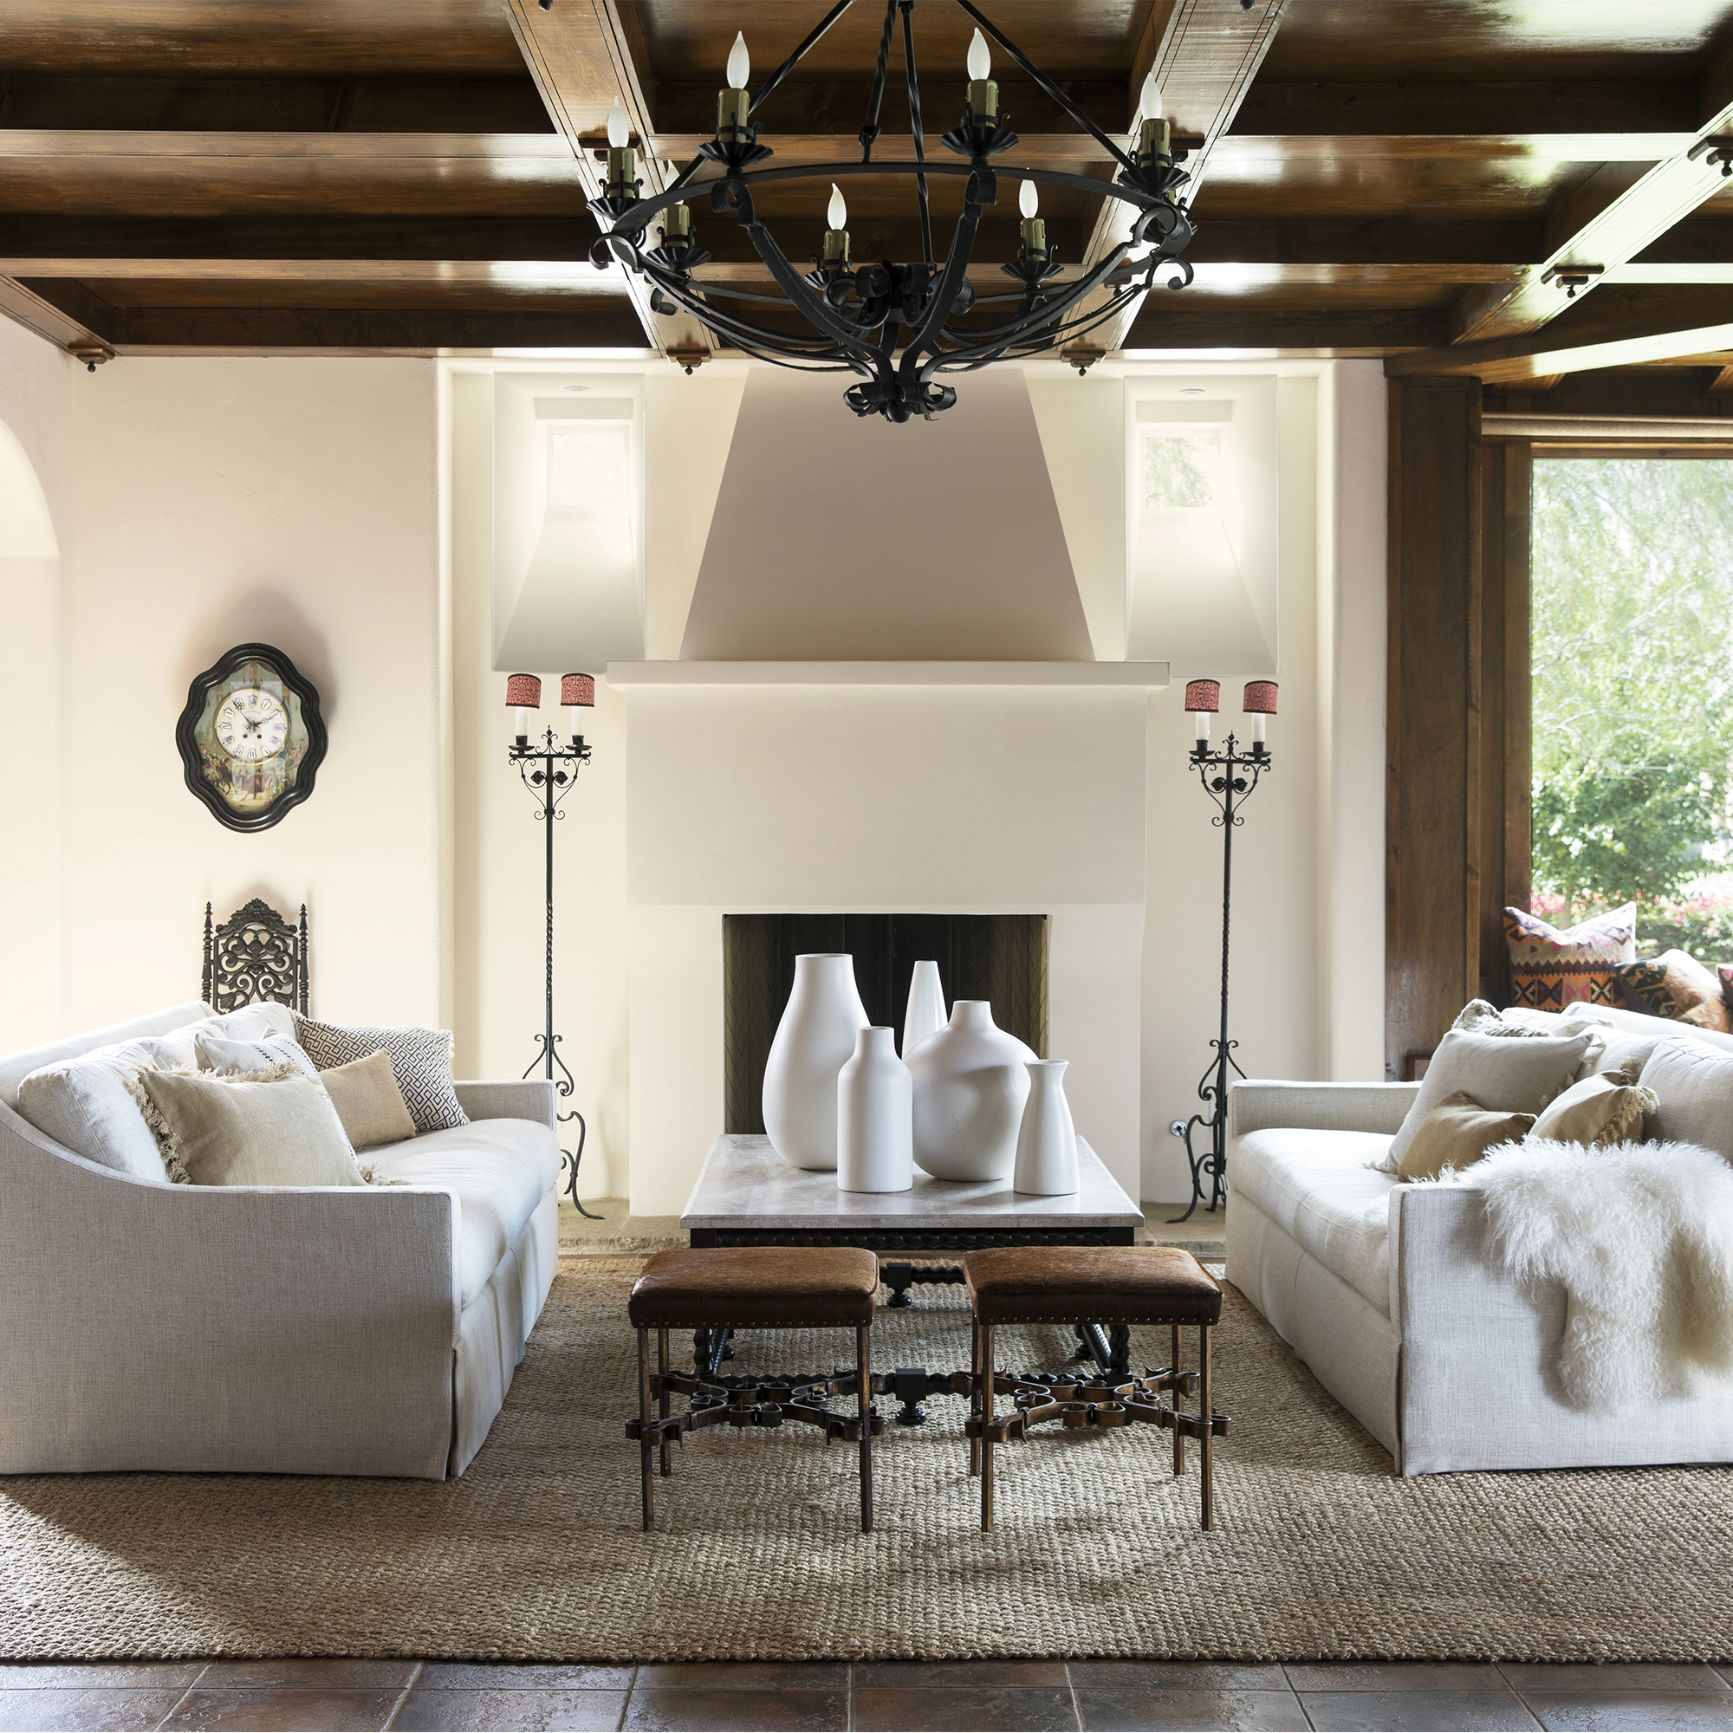 Crème Living Room with Fireplace